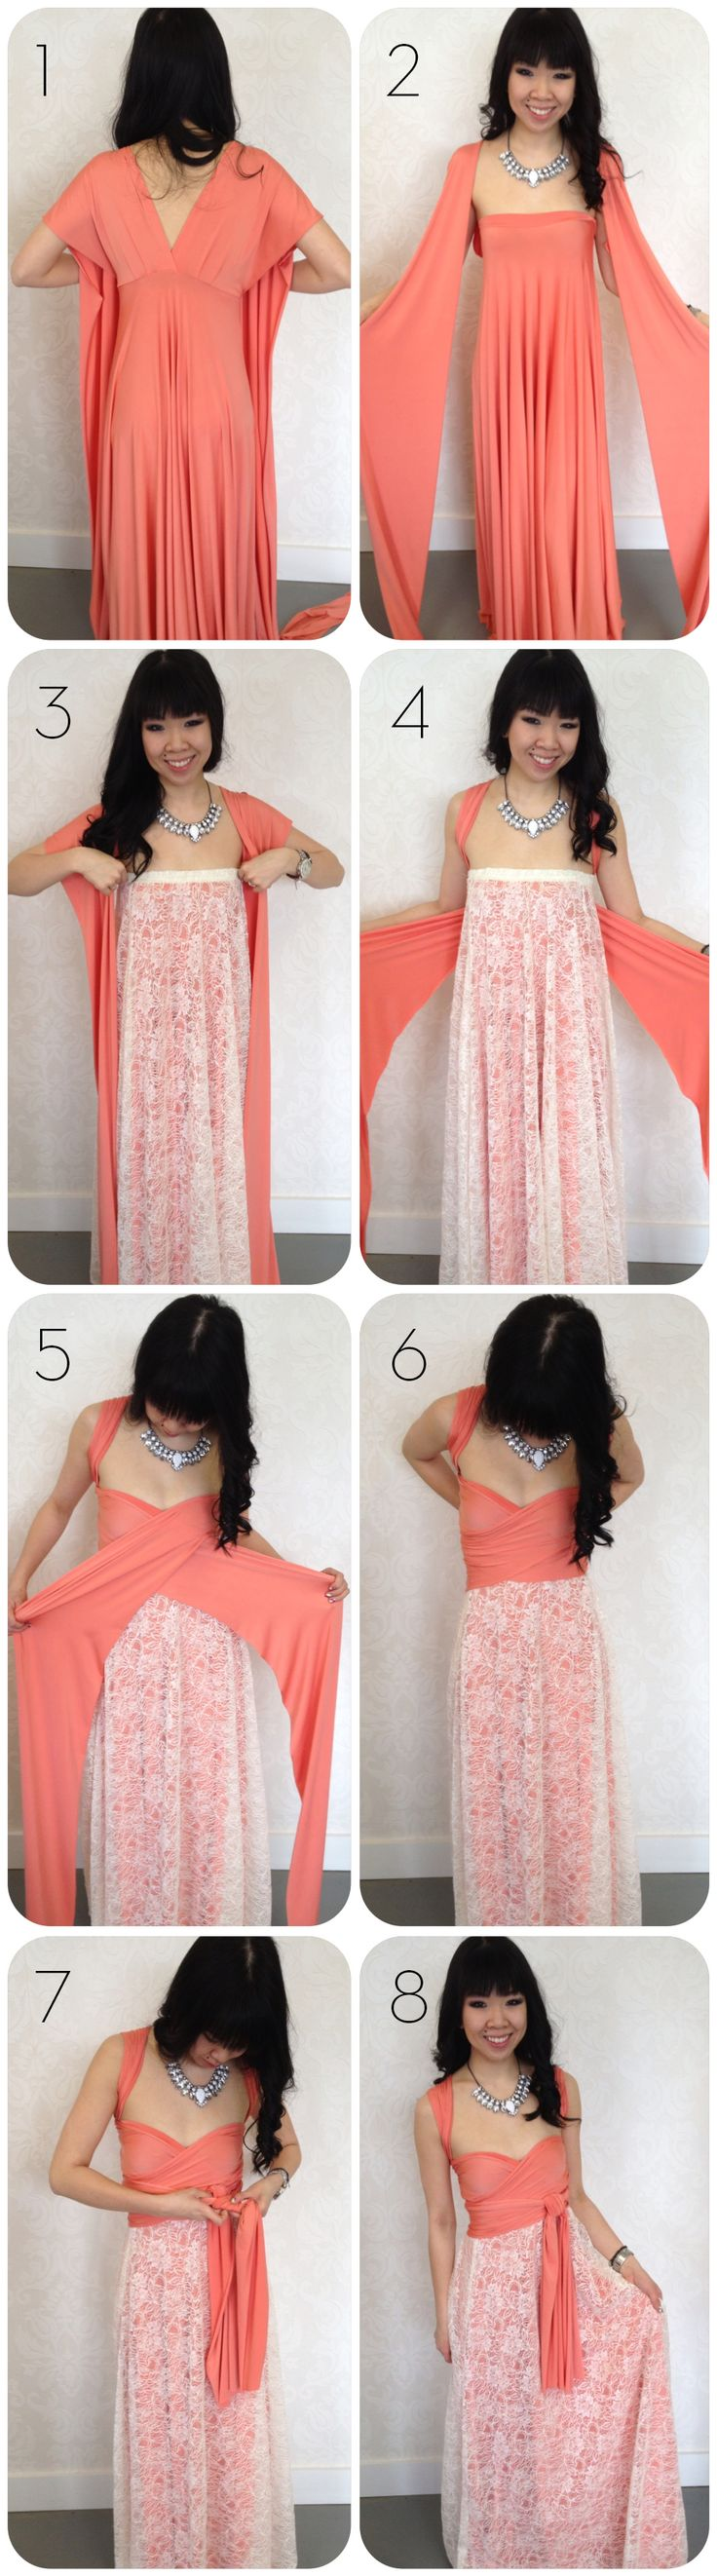 add lace to a convertible dress